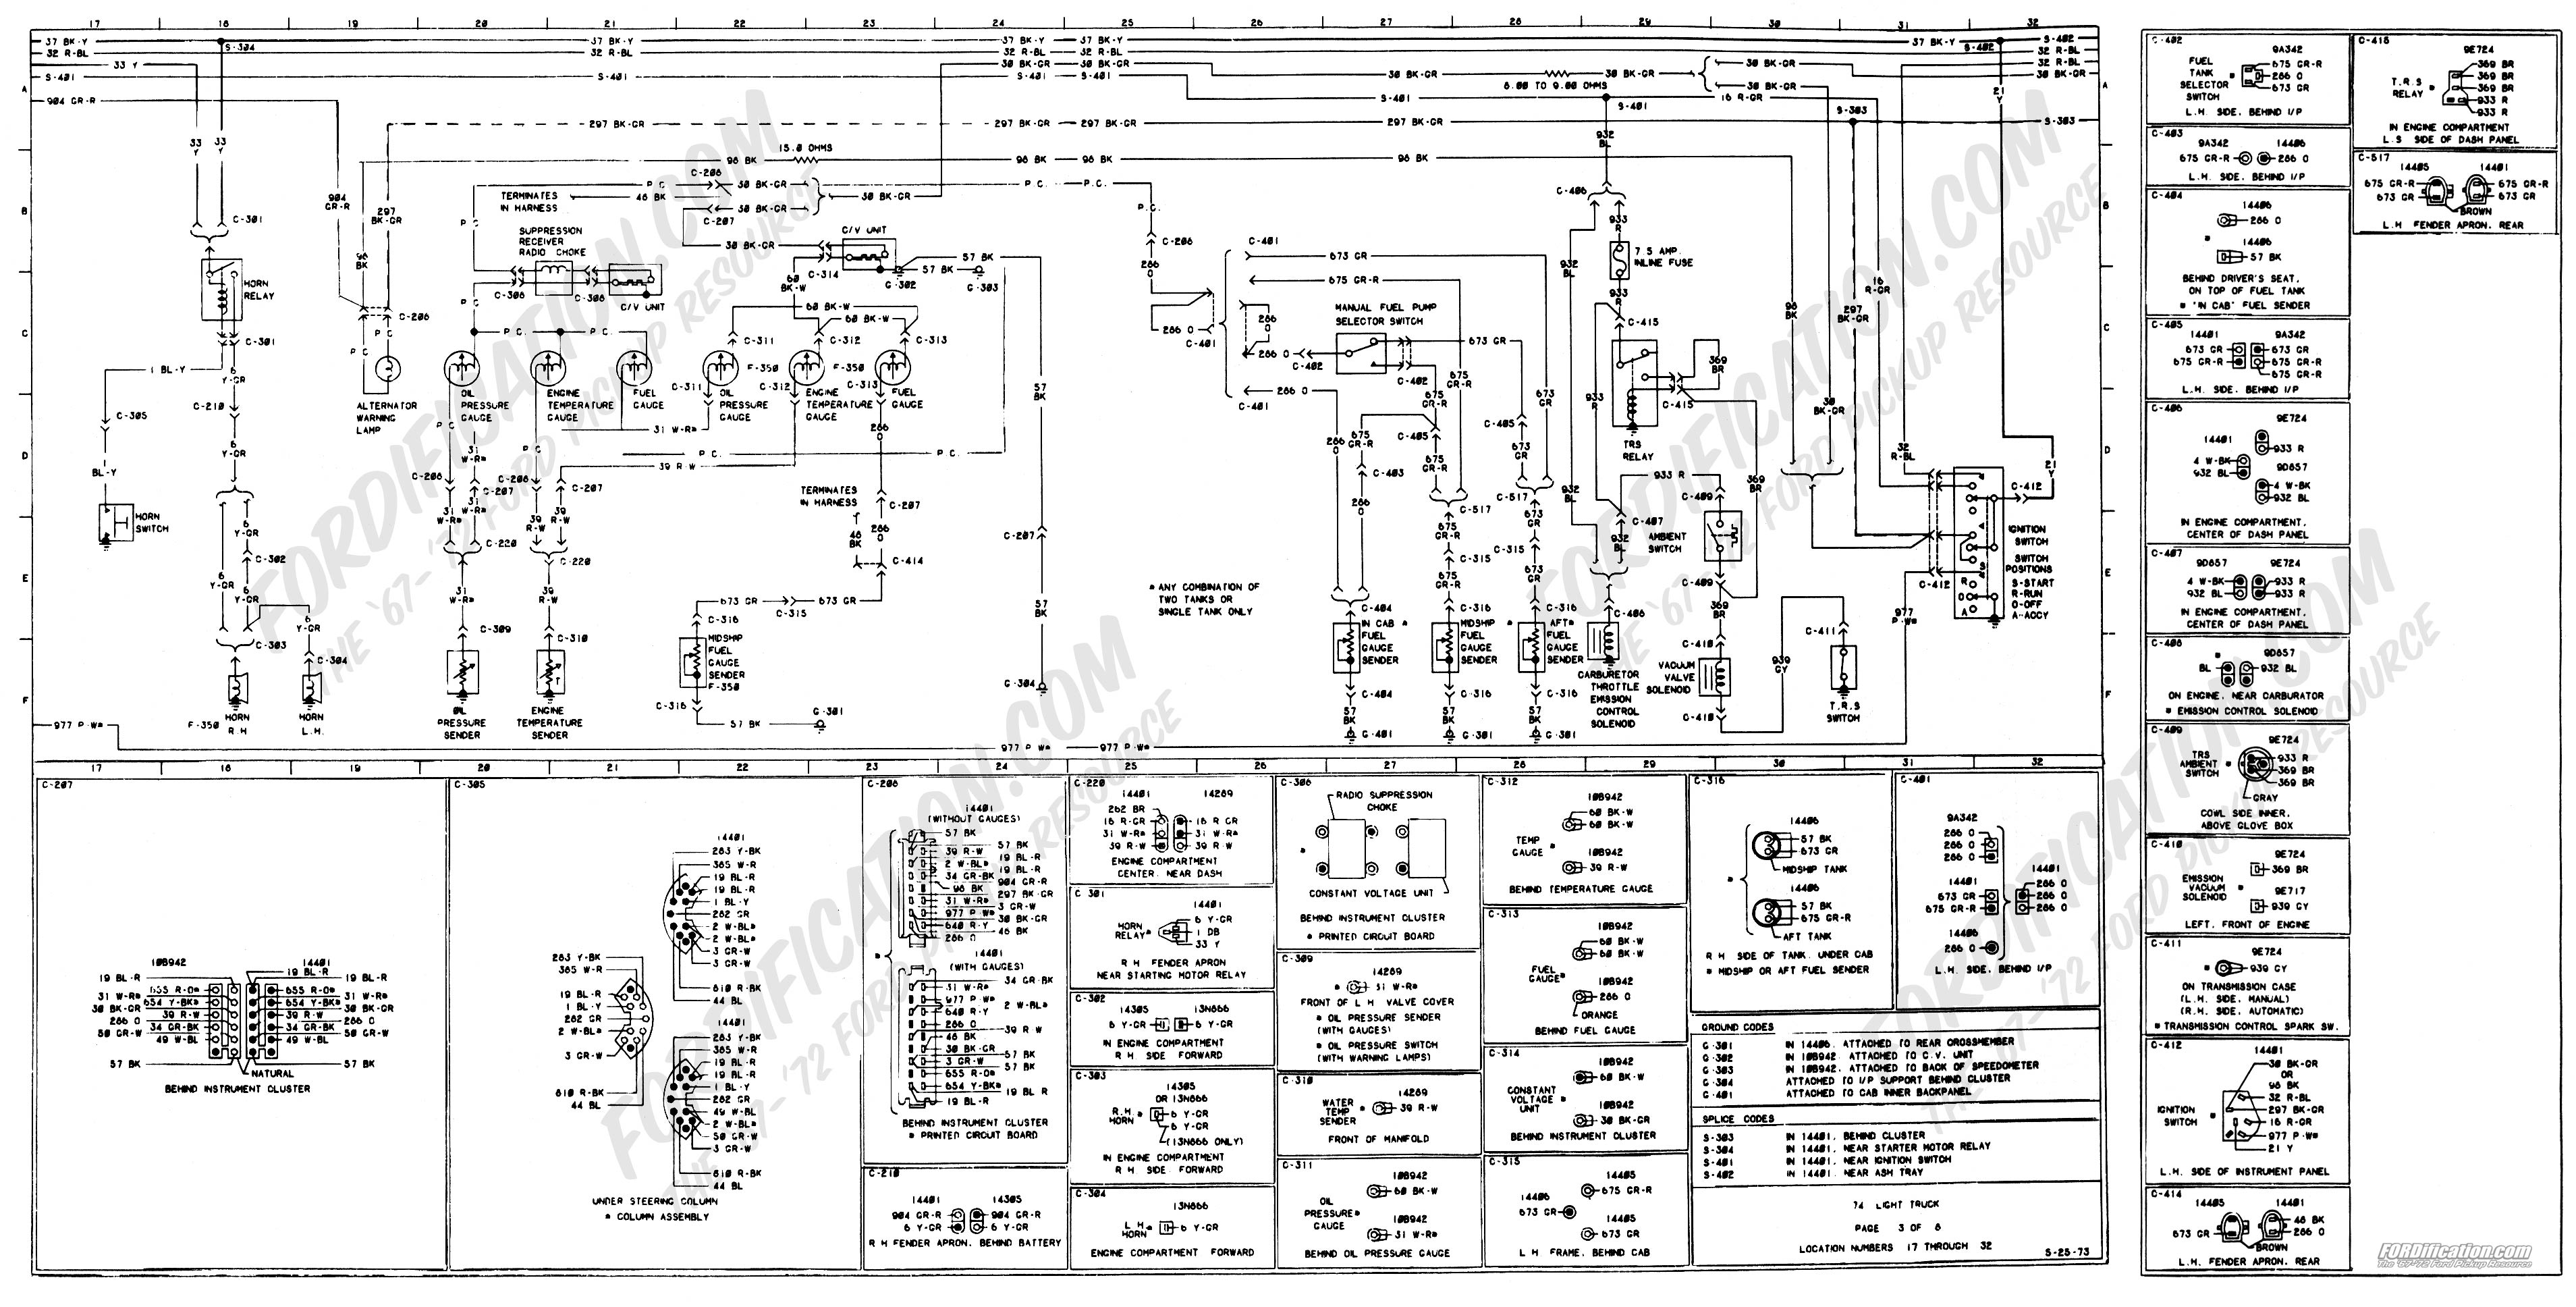 wiring_74master_3of8 1973 1979 ford truck wiring diagrams & schematics fordification net ford ltl 9000 wiring diagram at sewacar.co